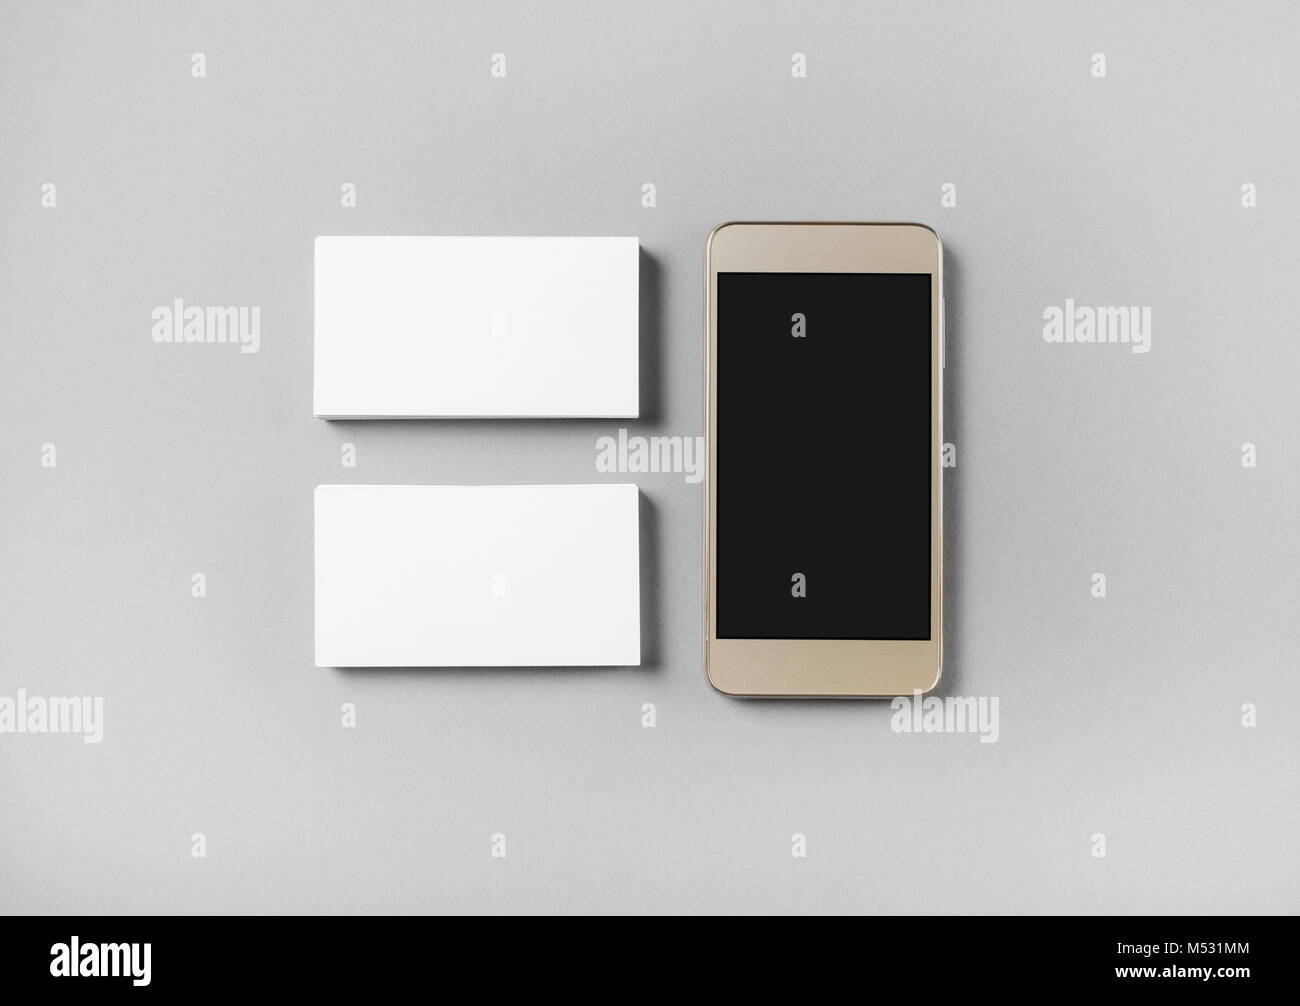 Business cards and cellphone Stock Photo: 175244180 - Alamy